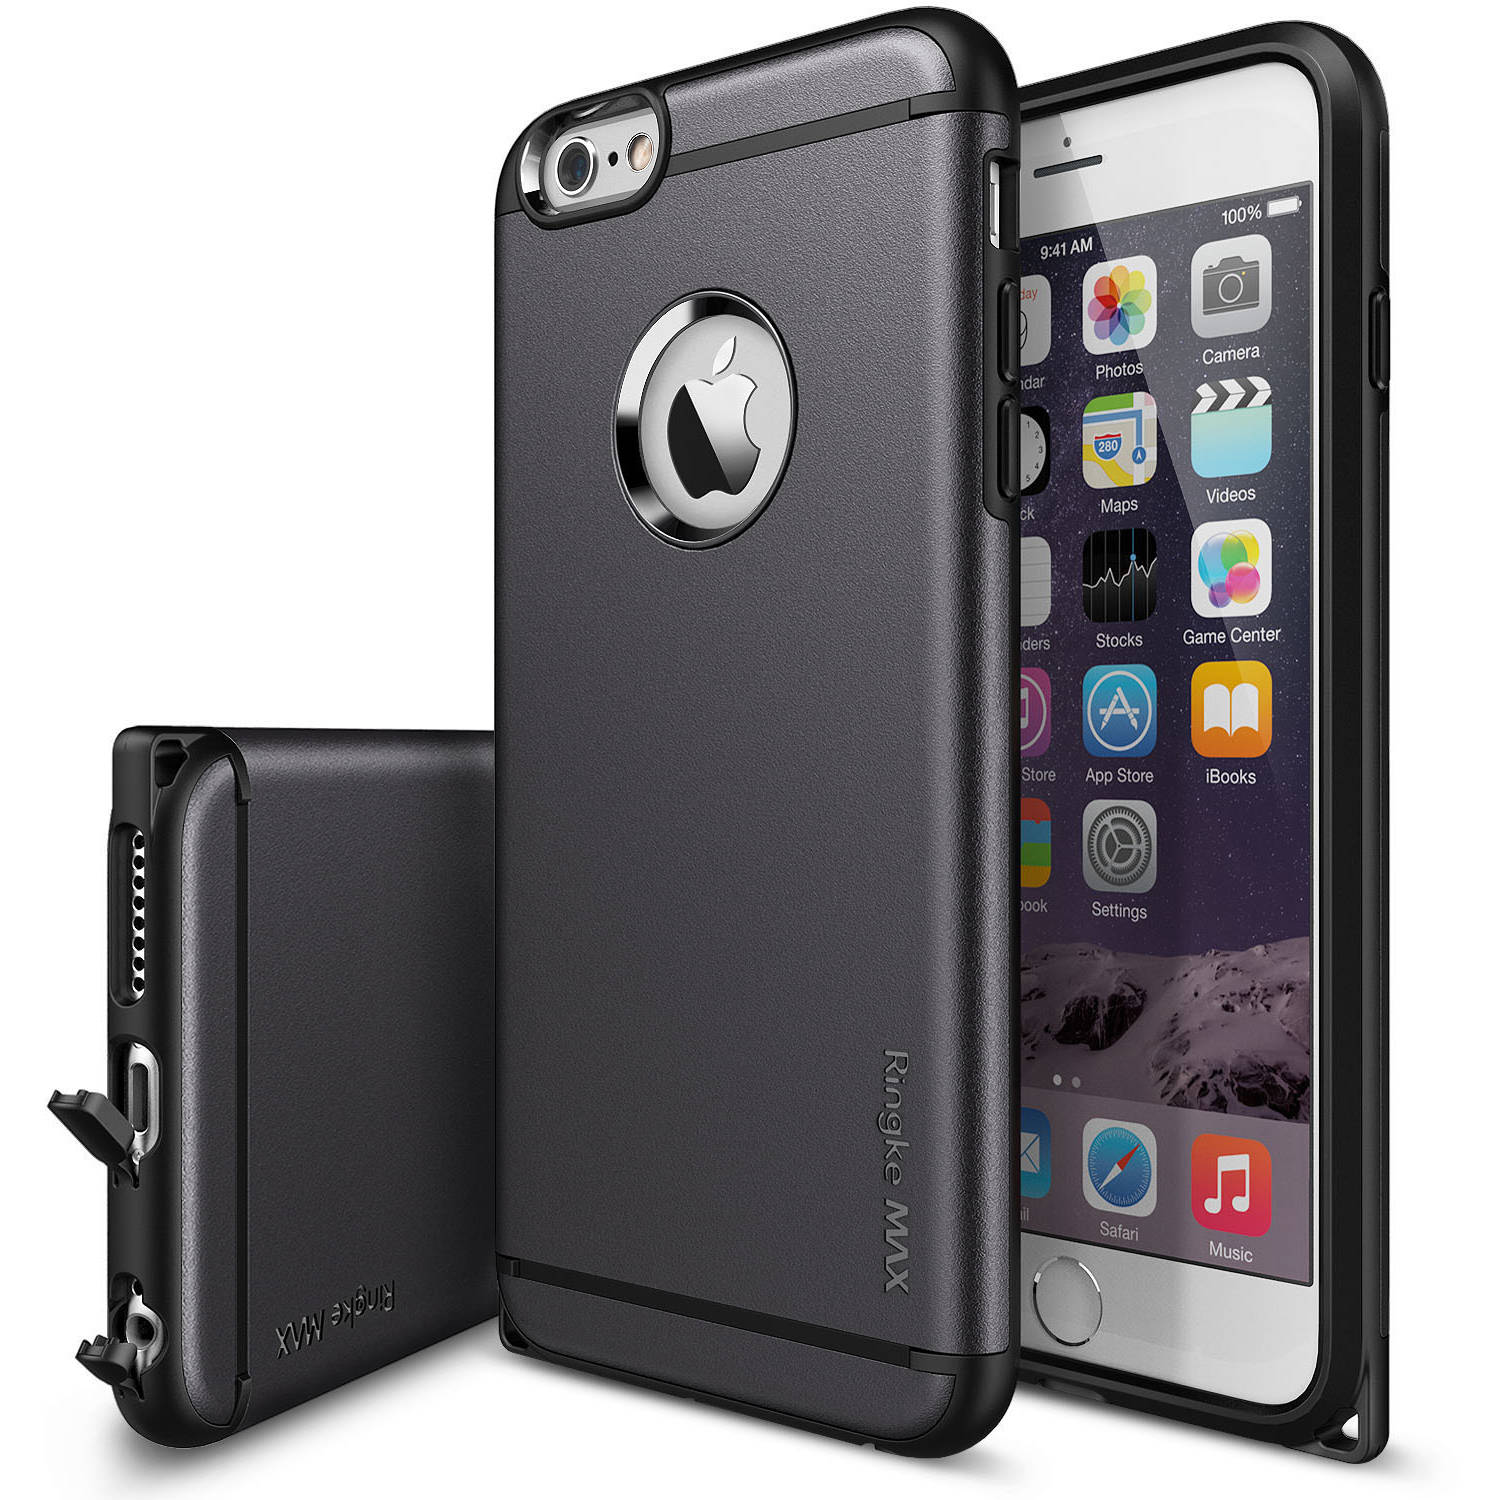 Ringke MAX Case Double-Layer Heavy-Duty Protection Case for Apple iPhone 6 Plus/6S Plus